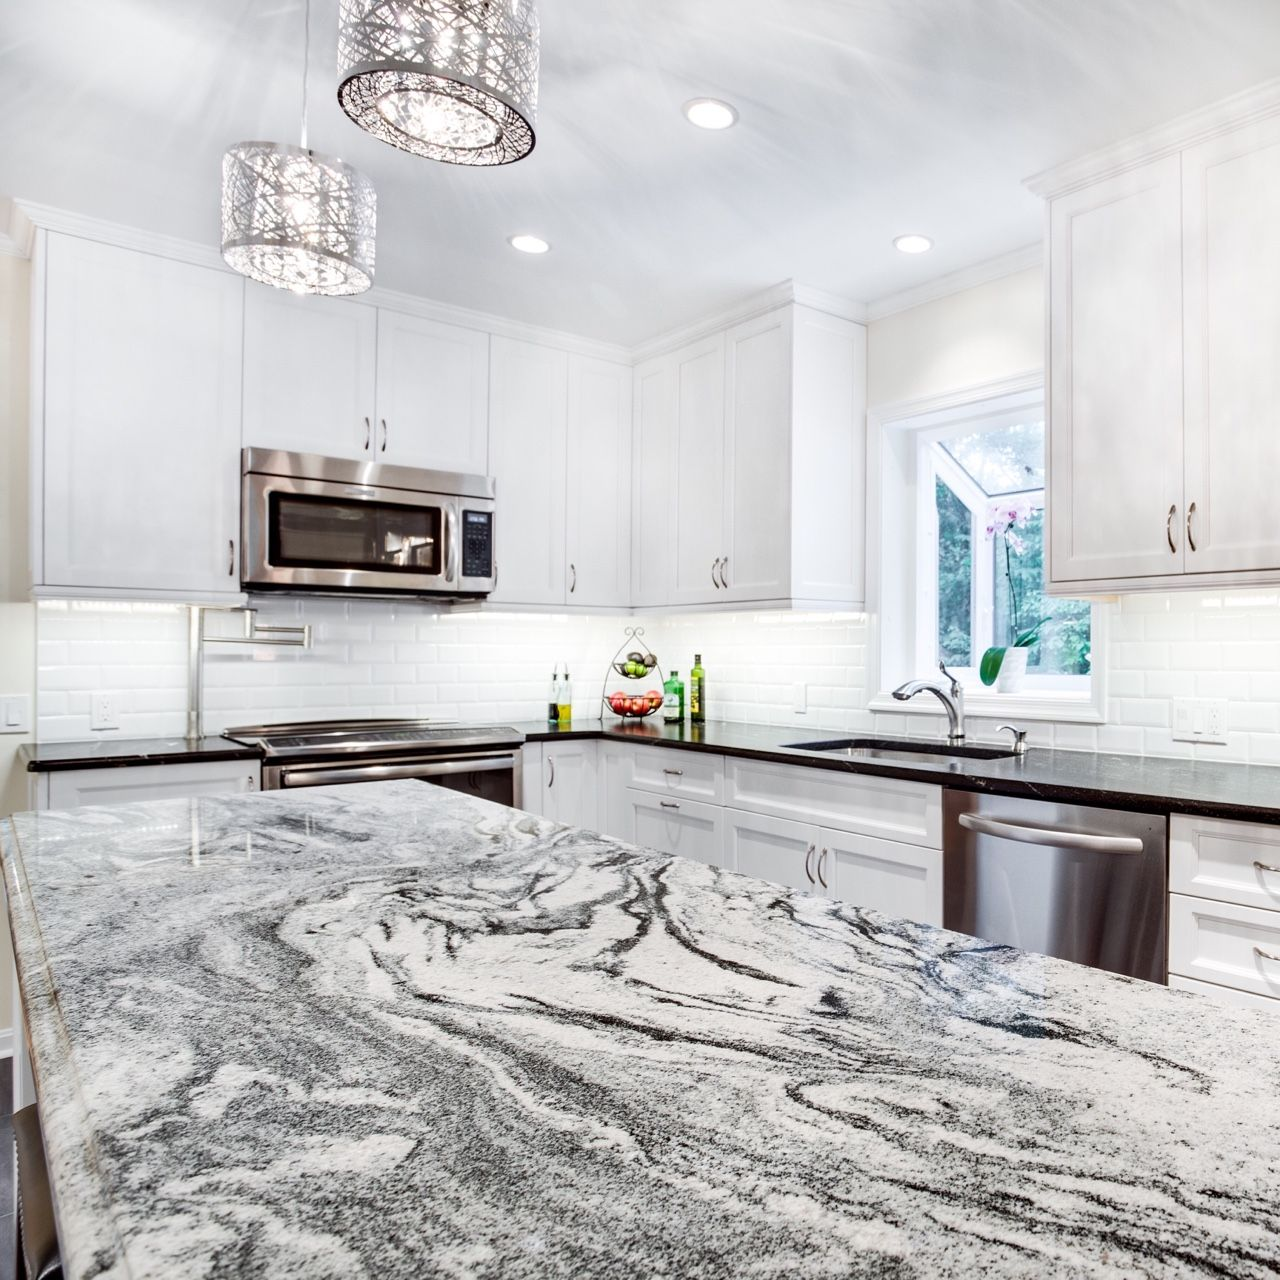 This Silver Cloud granite kitchen island countertop makes quite an ...